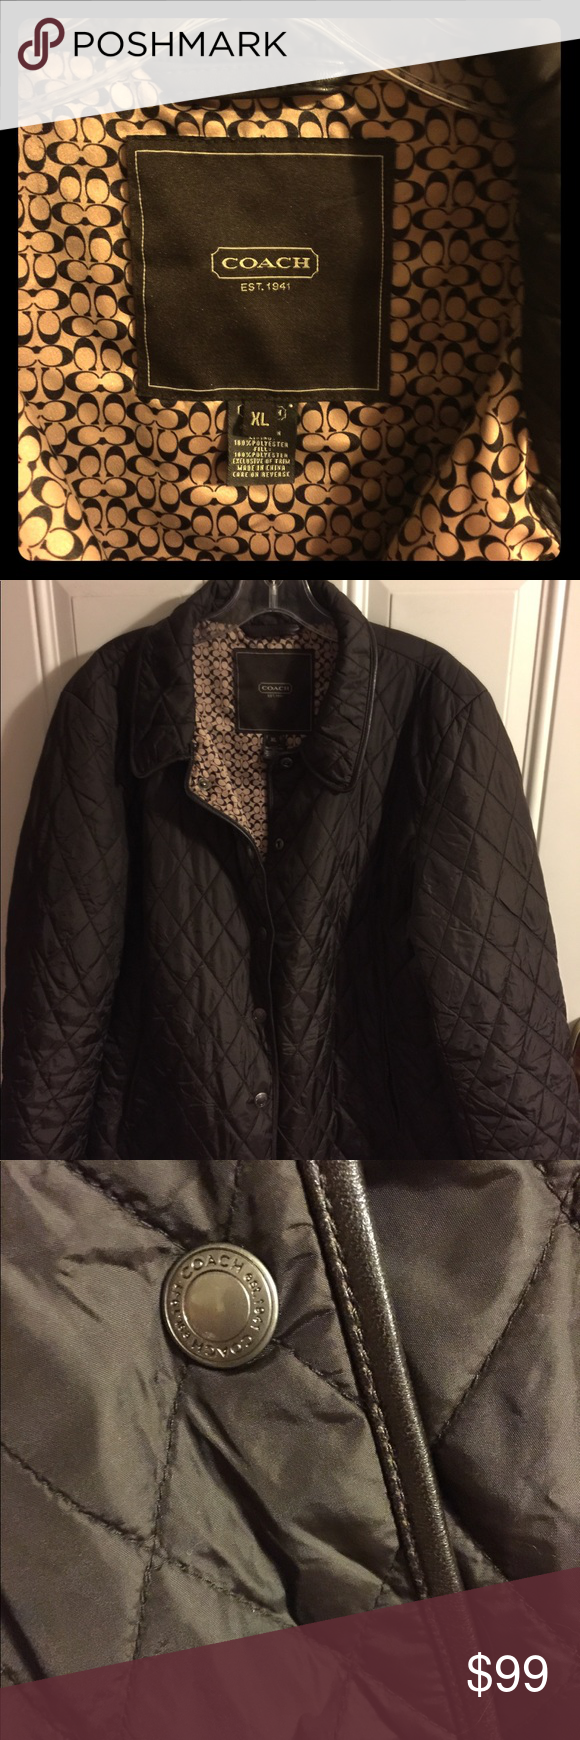 COACH signature quilted light weight jacket XL Signature